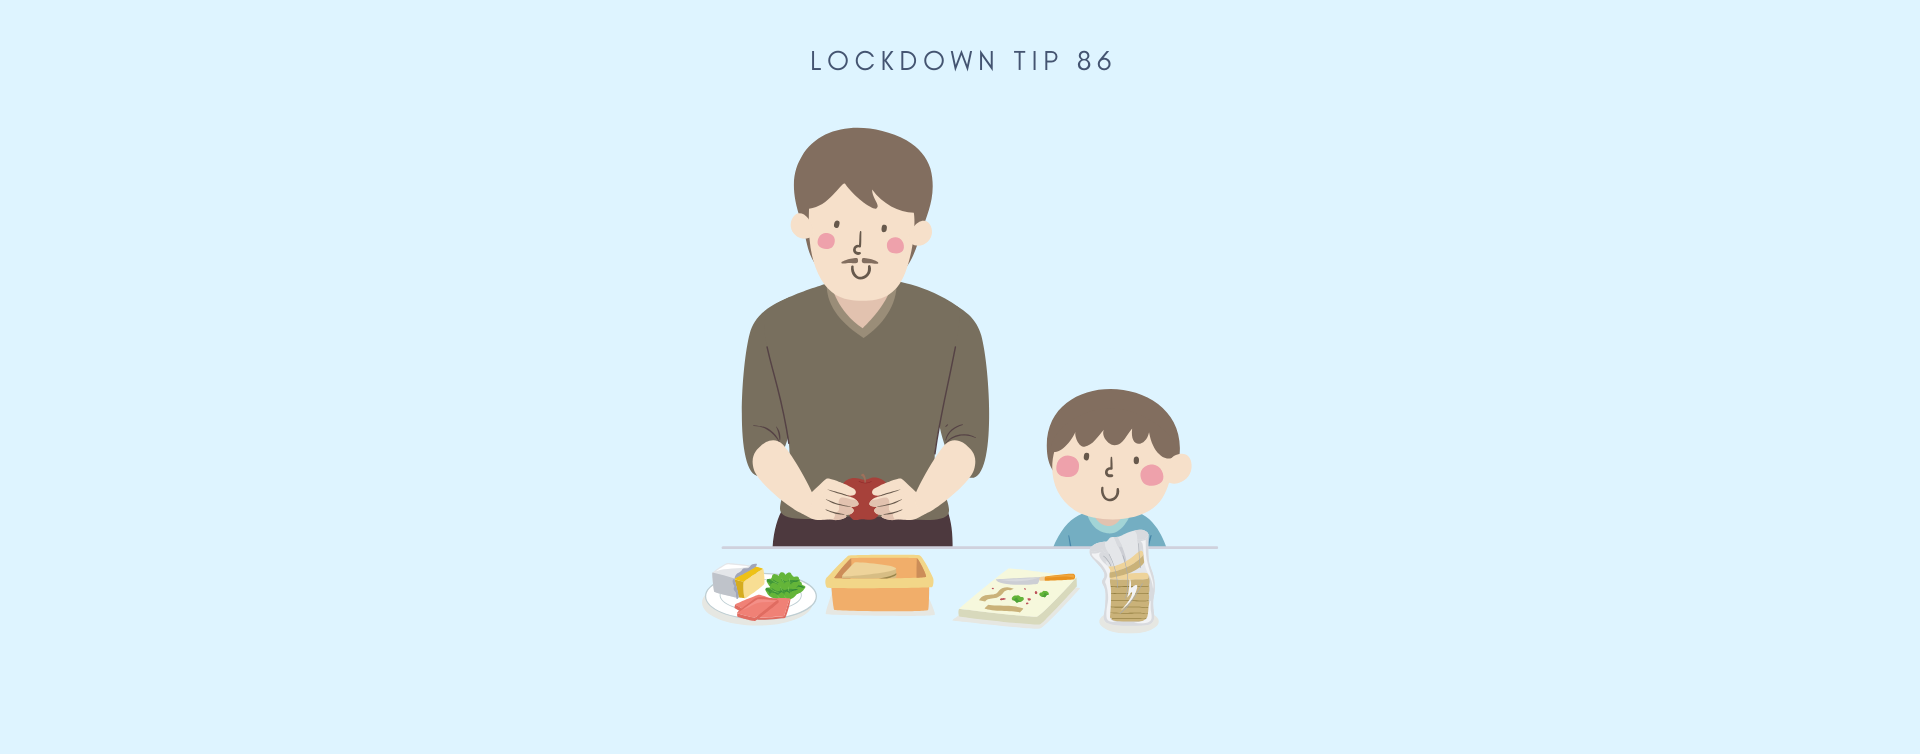 MCSA Lockdown Tip 86